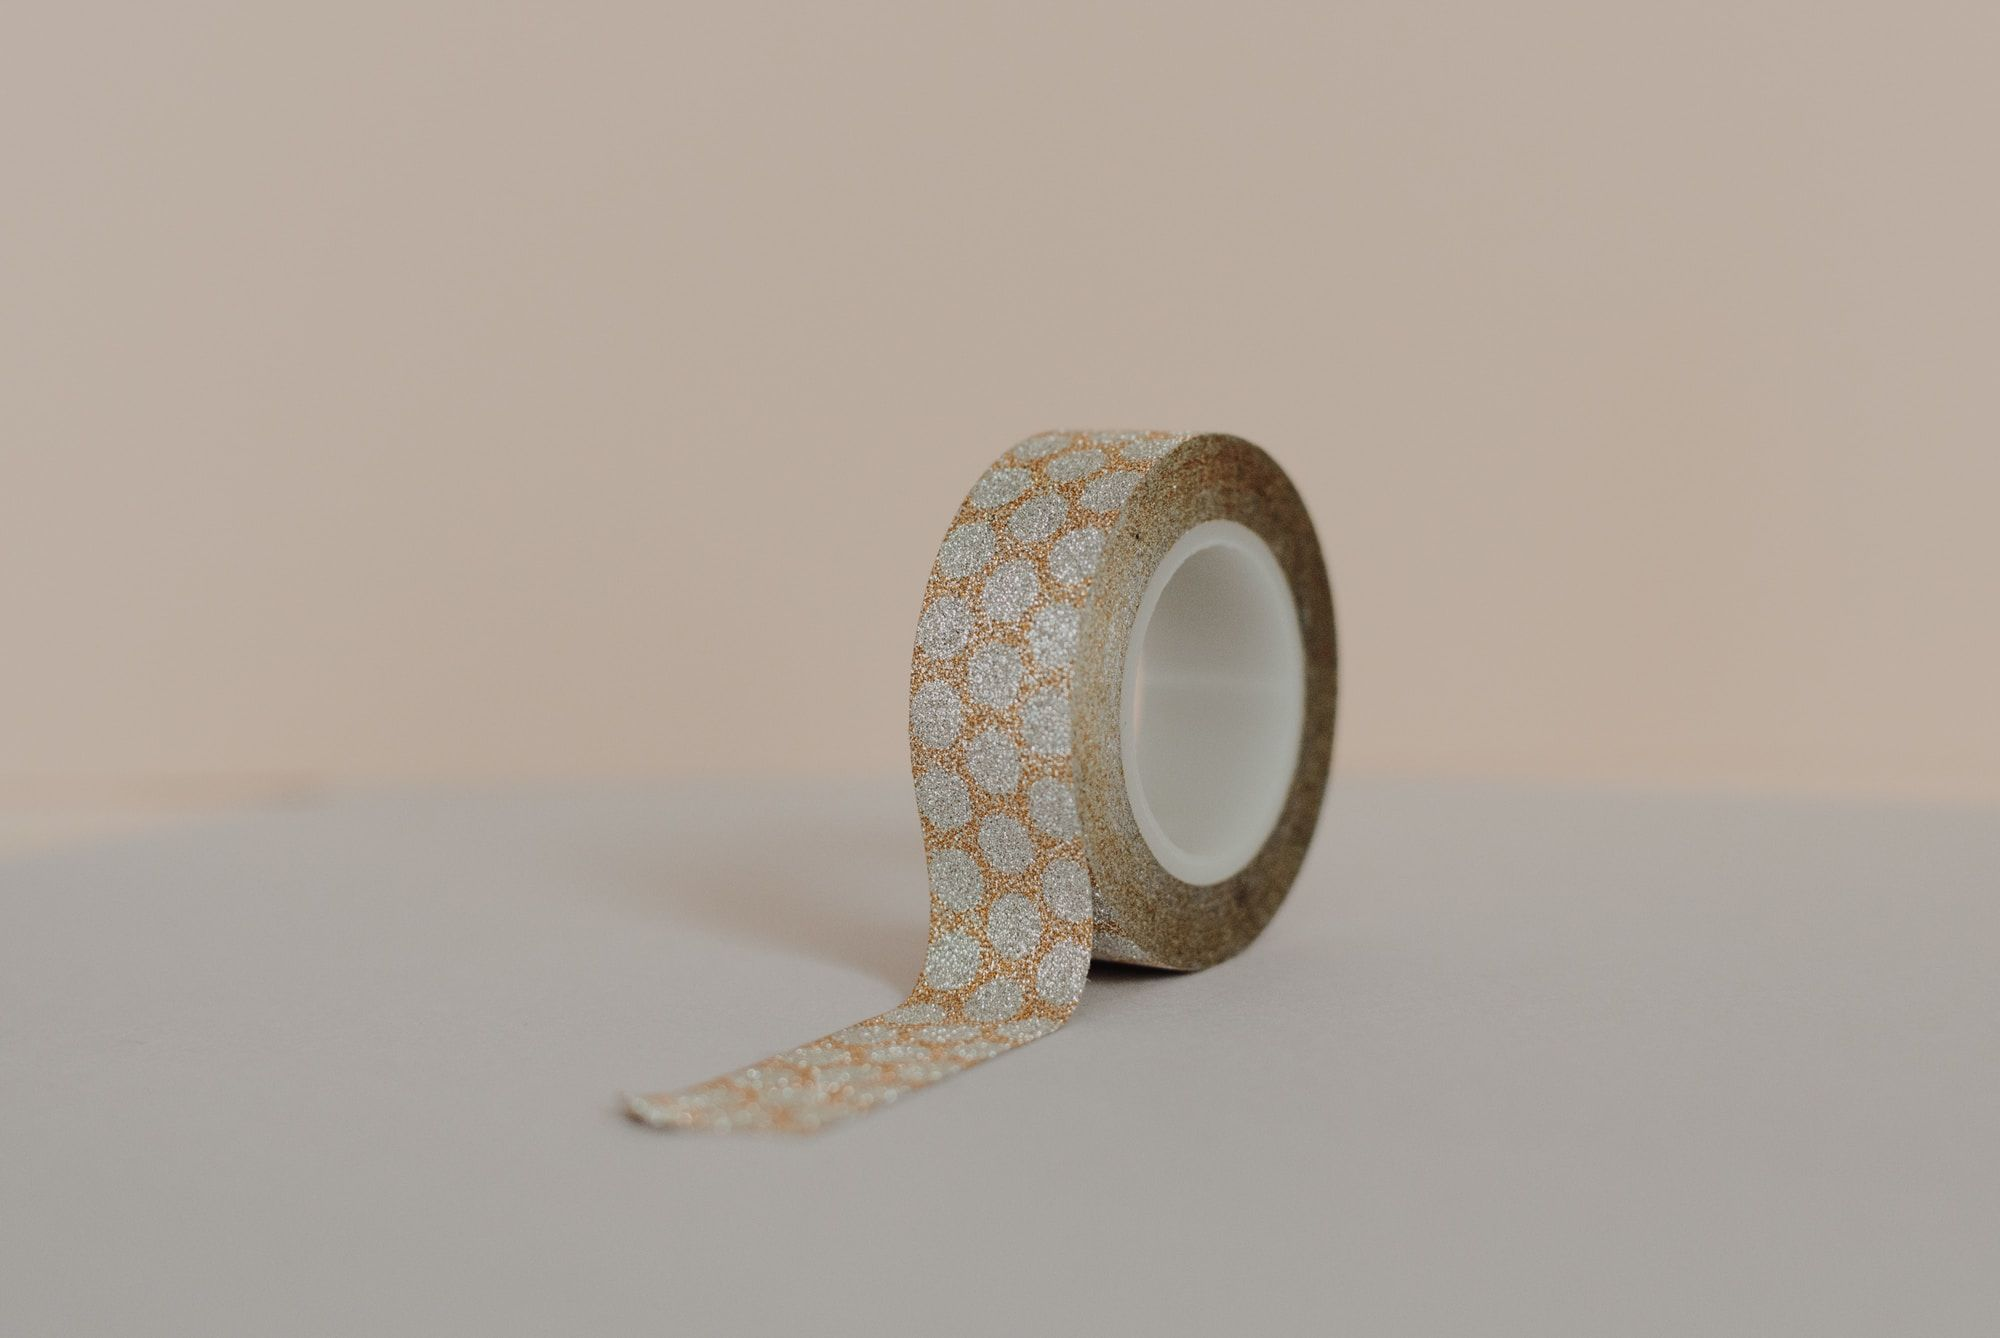 A roll of paper tape.